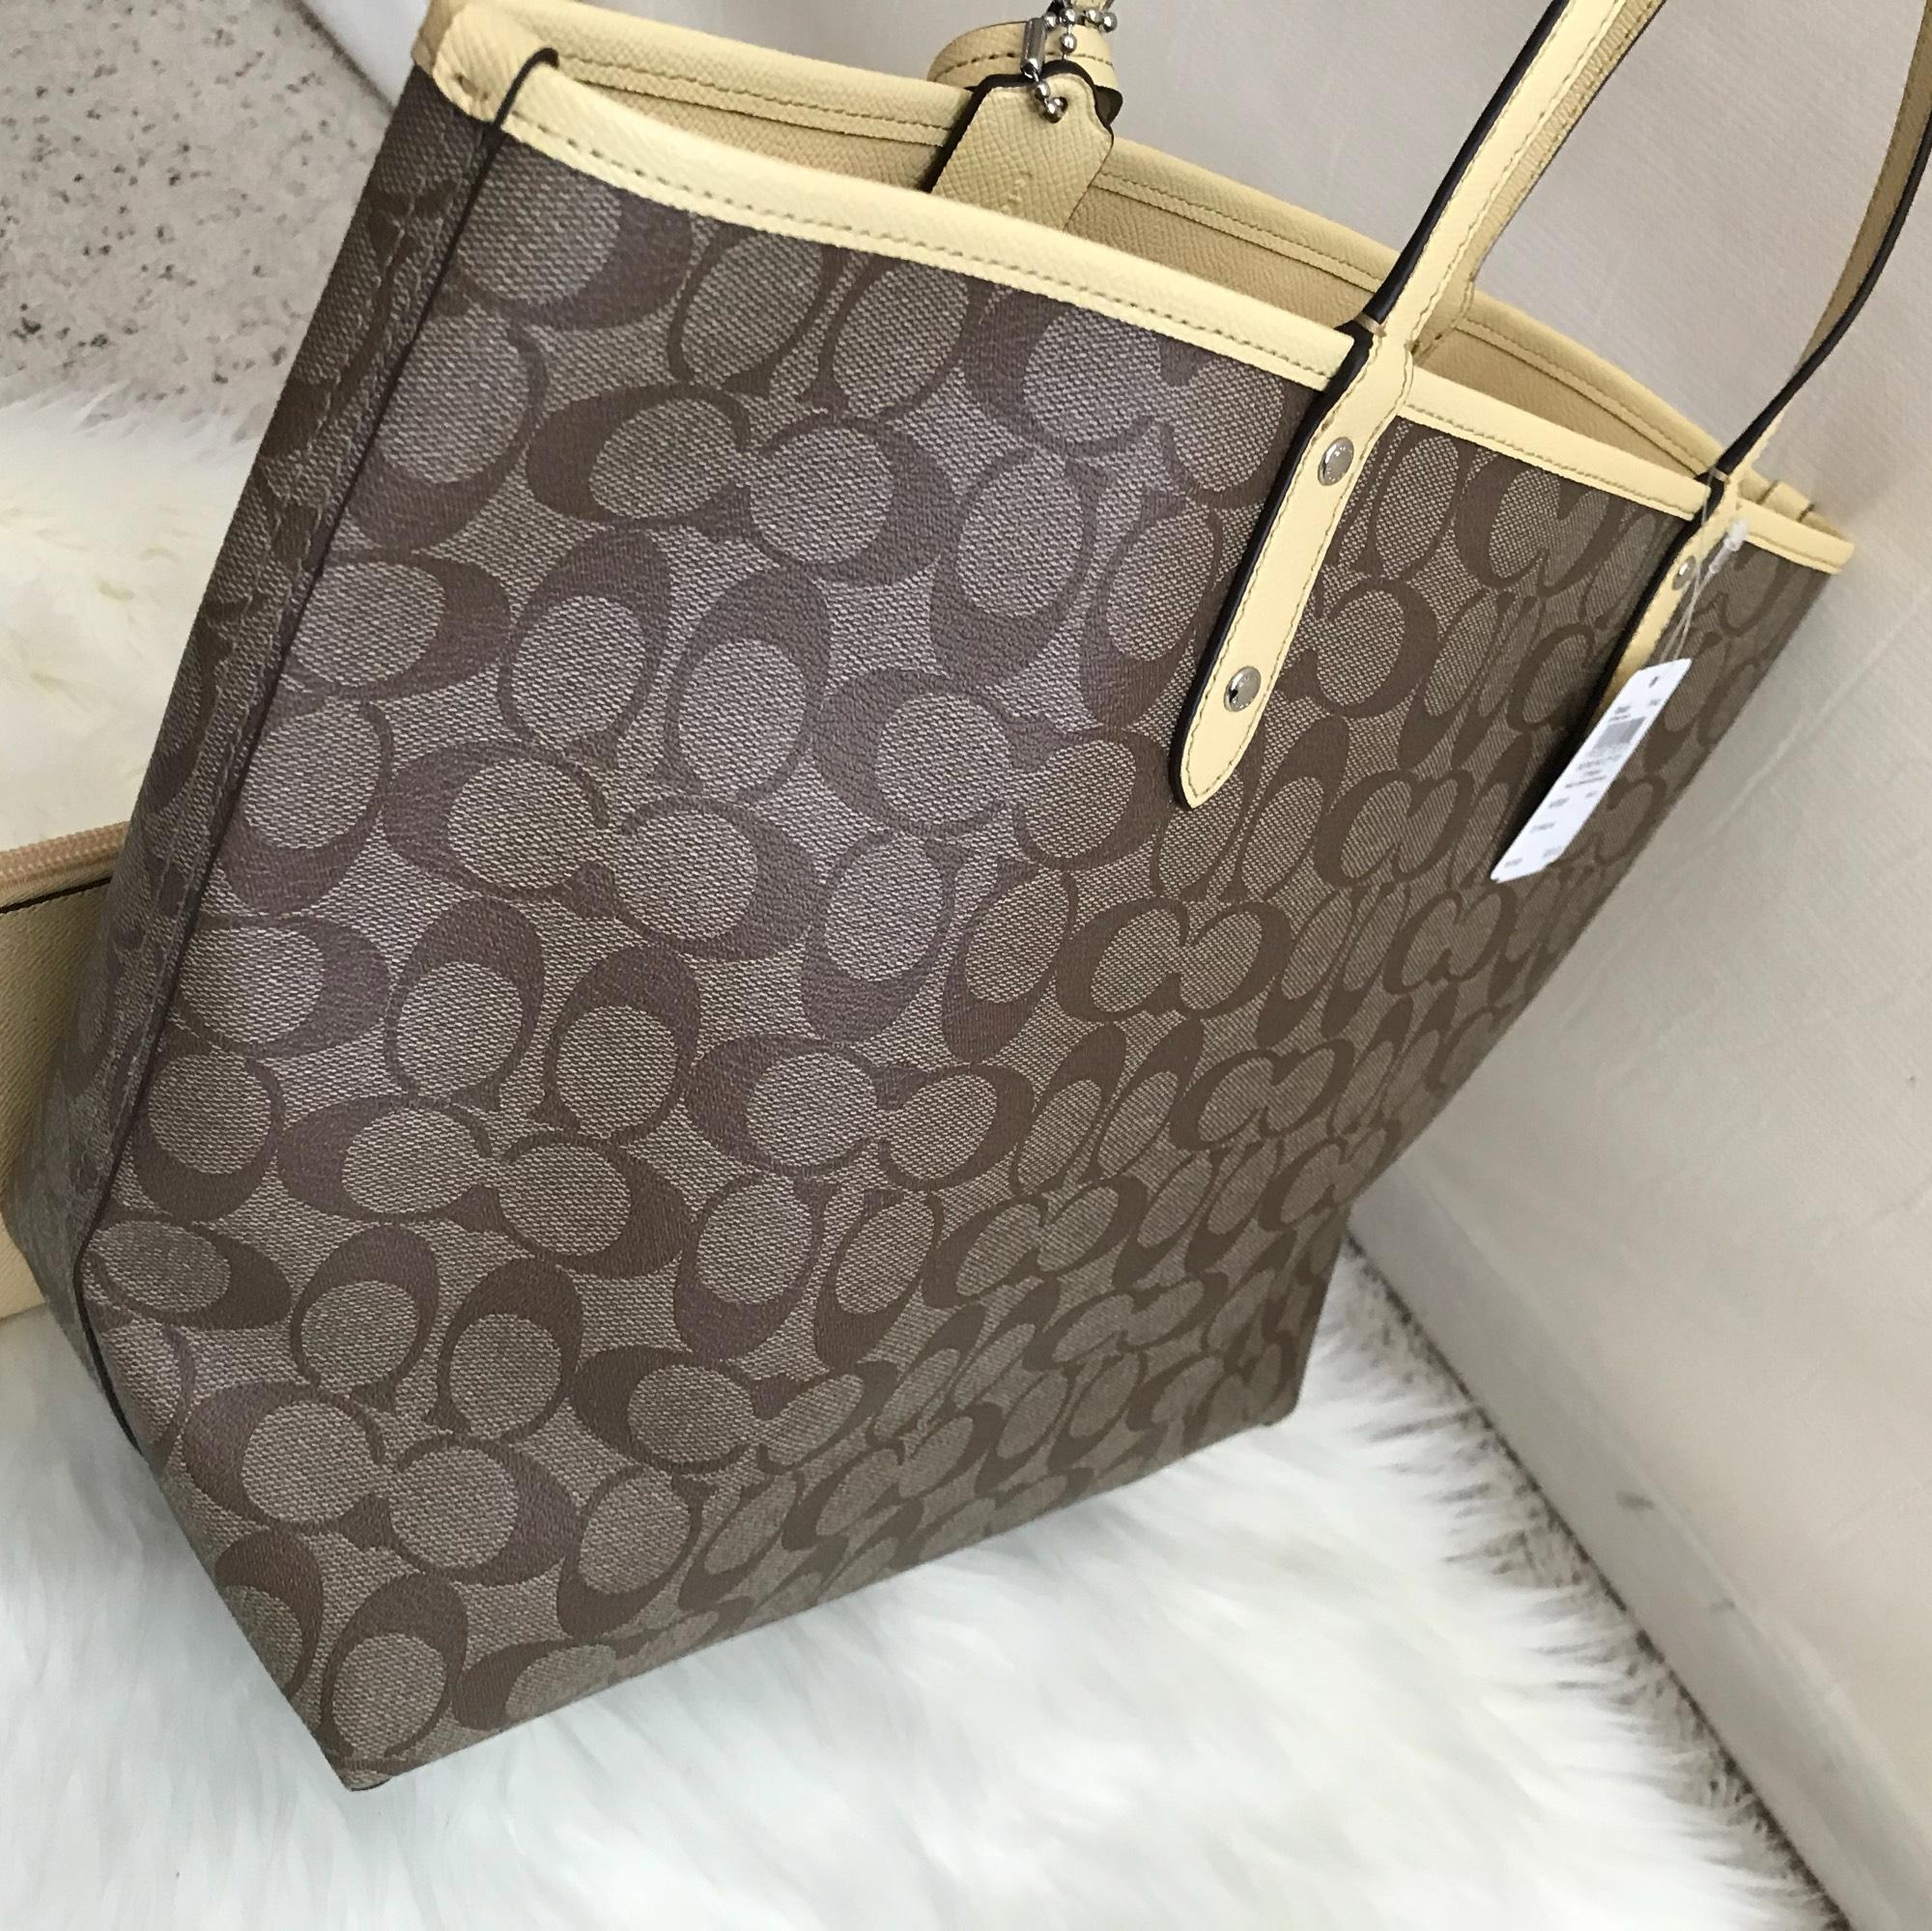 ... khaki vanilla bag handbag luxyvip 2f01f 43c2e  sale coach city signature  reversible f36658 multicolor coated canvas tote 5c1d8 4dbac 345a800135b91